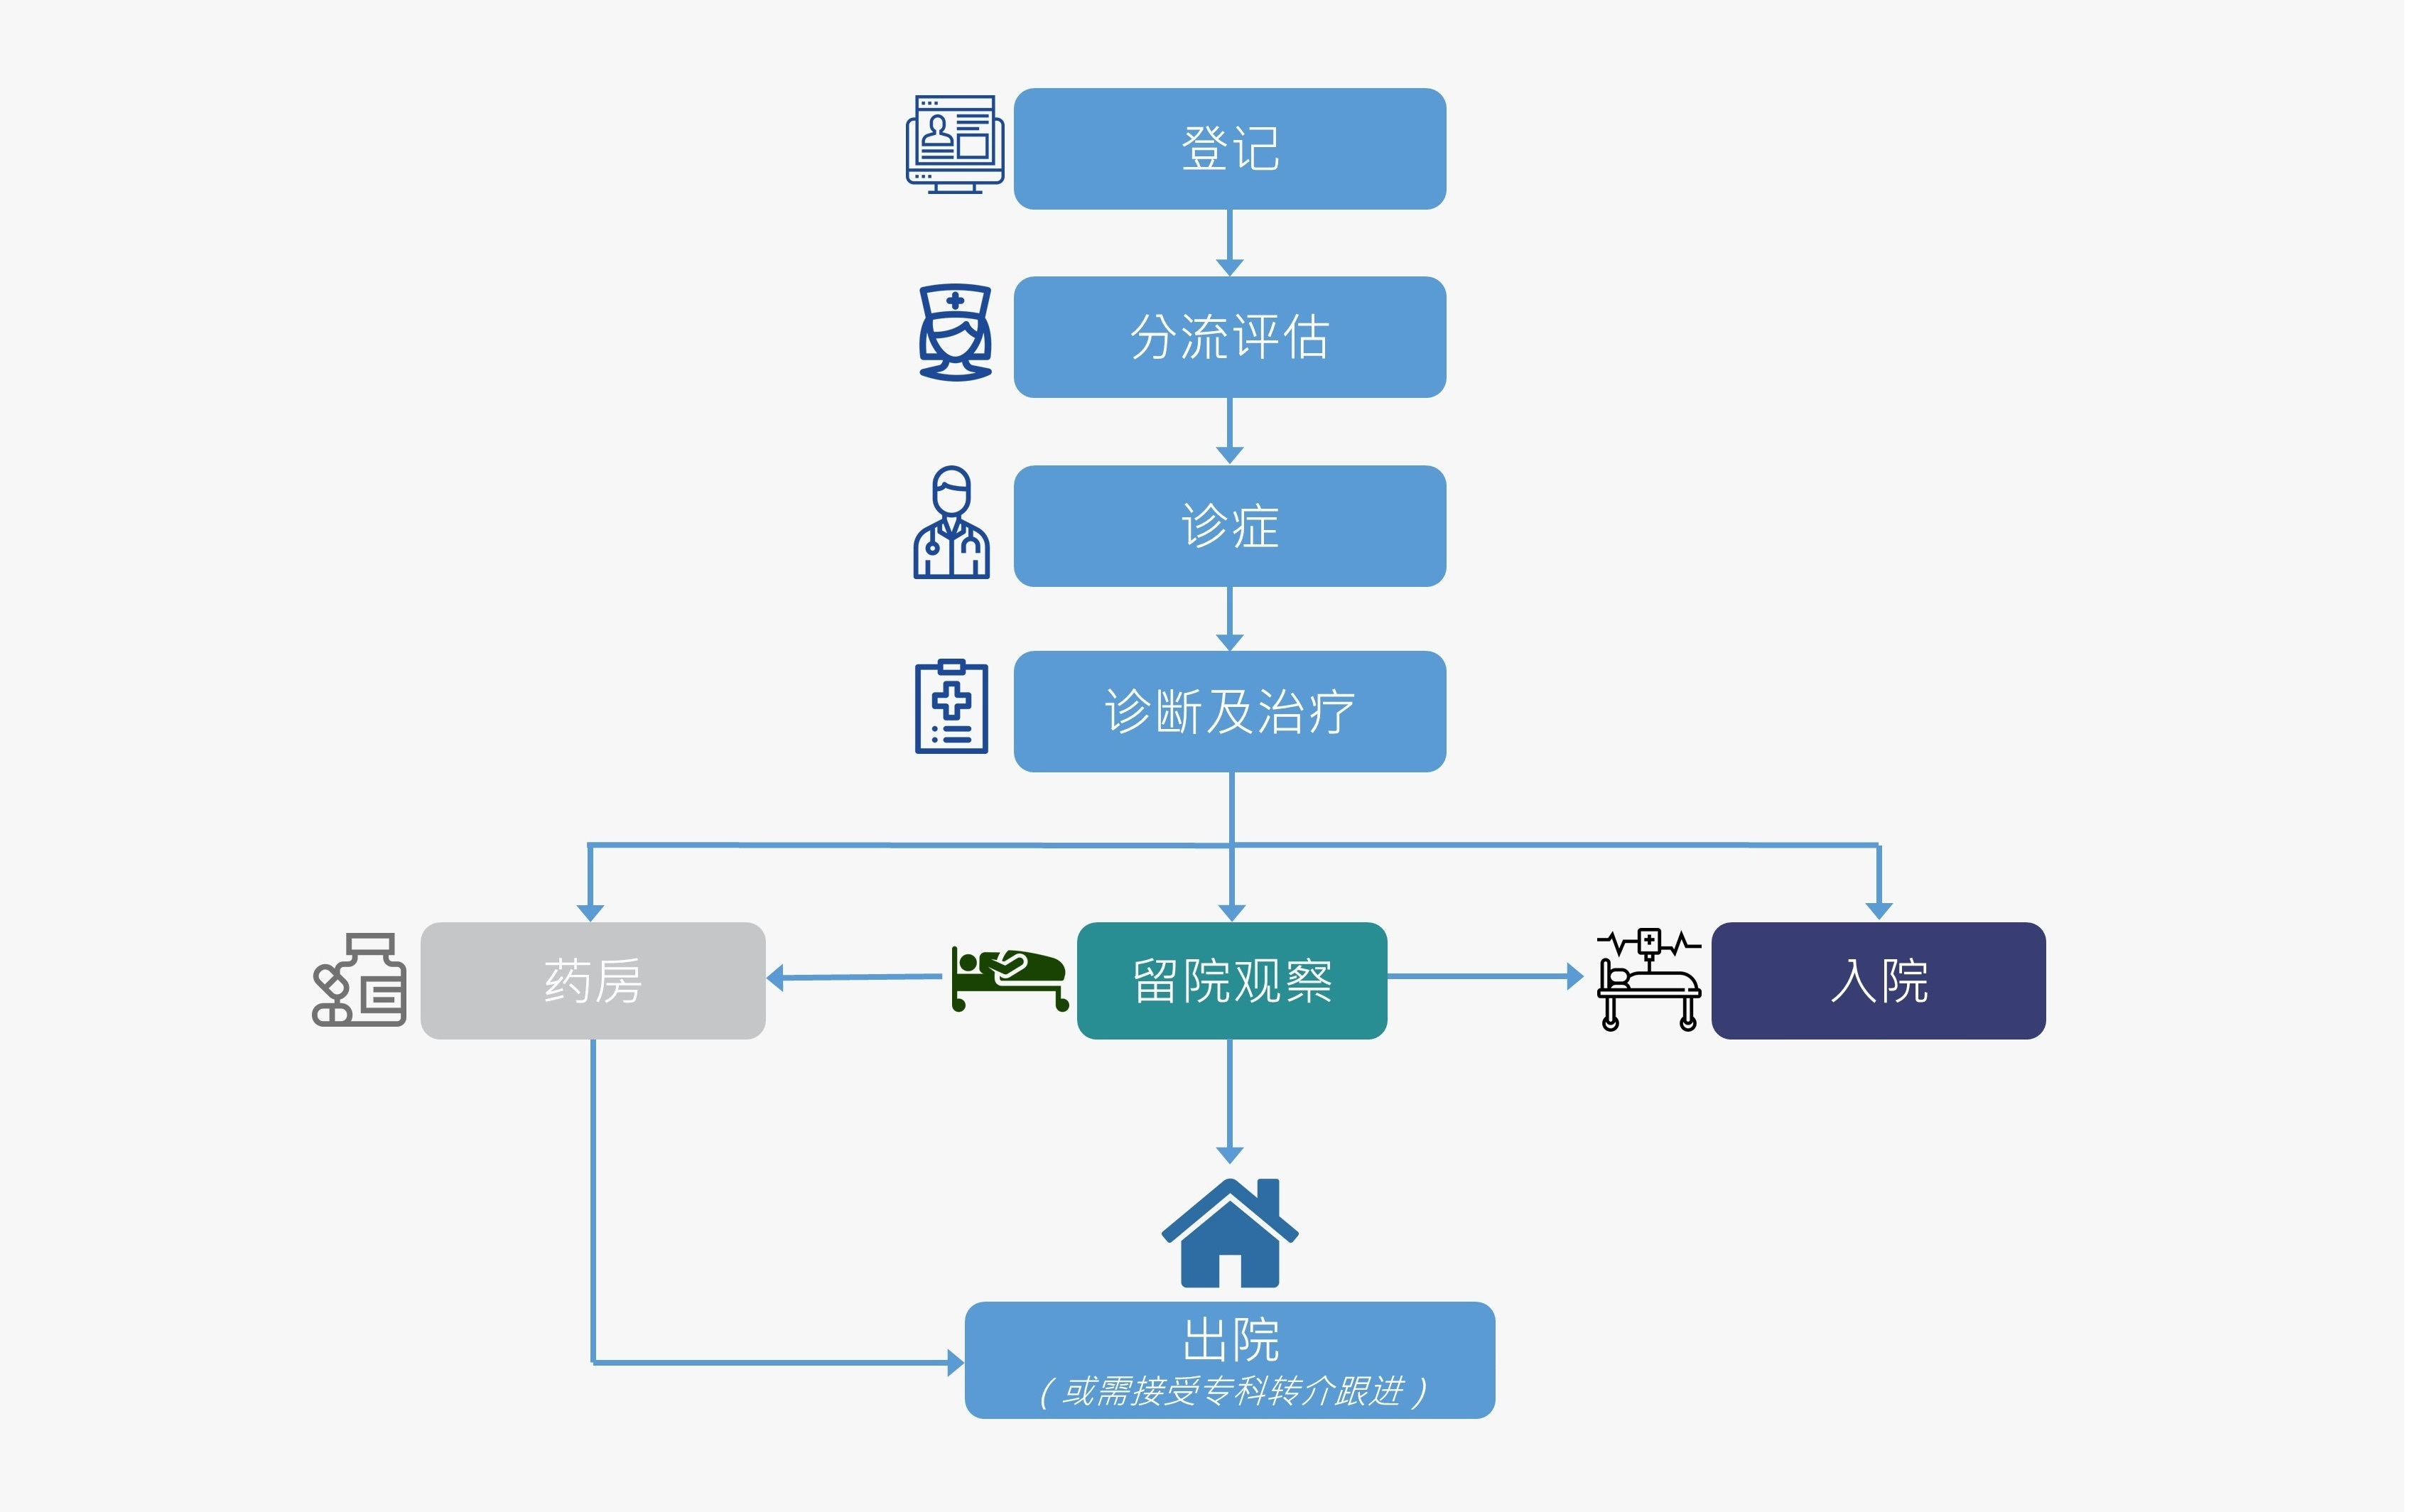 patient-flow_Schinese_with-icons-cropped2.jpg#asset:58421